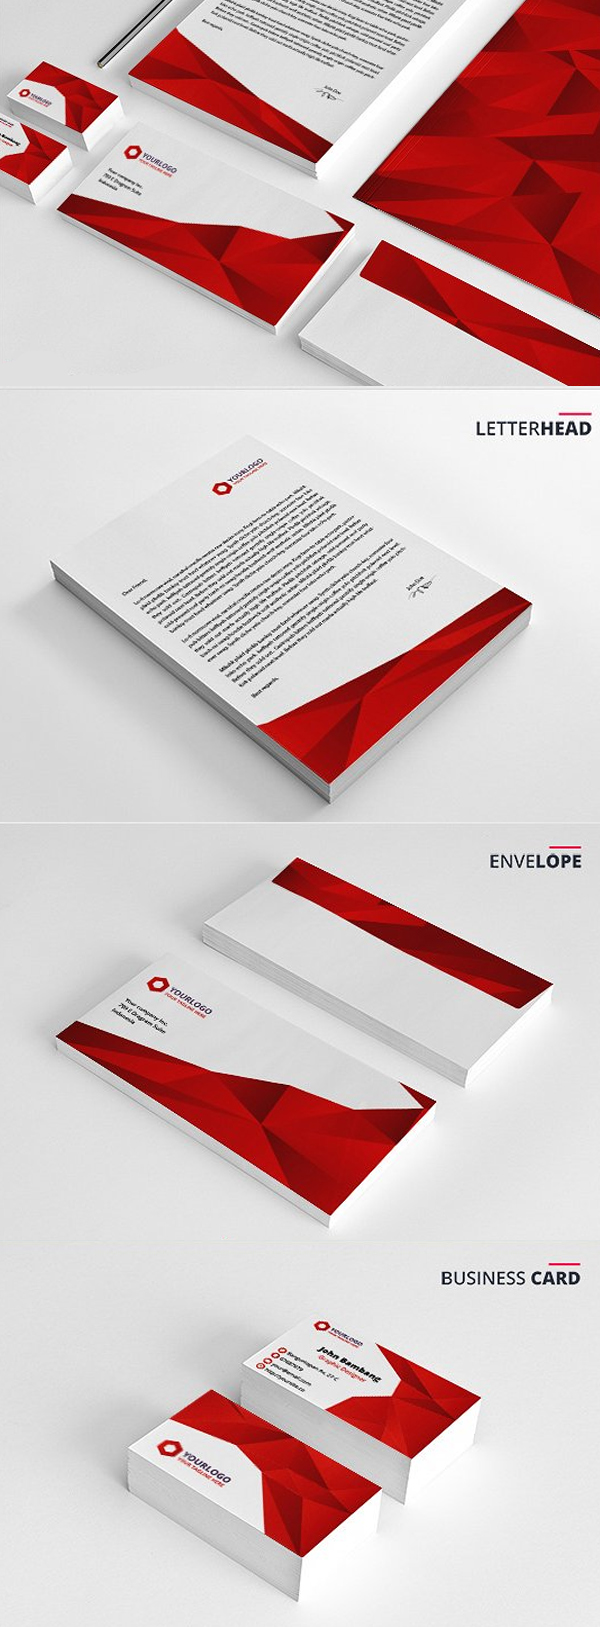 Modern Business Branding / Stationery Templates Design - 12